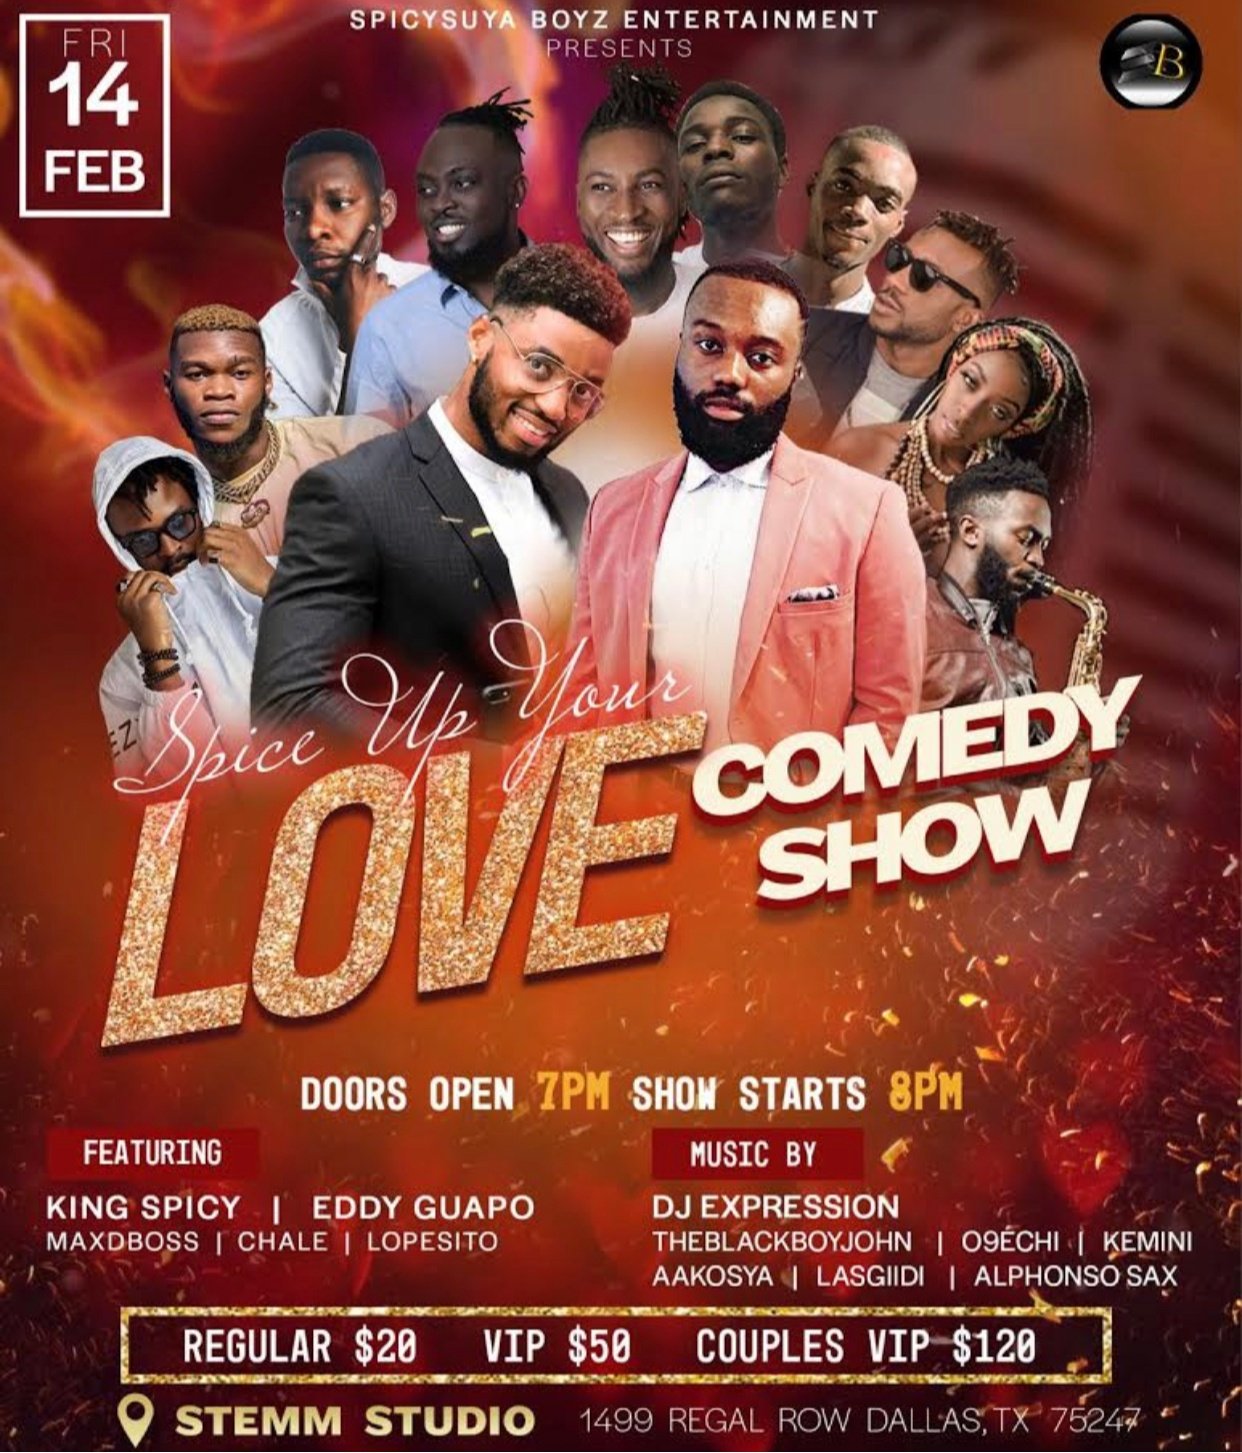 Spice Up Your Love Comedy Show